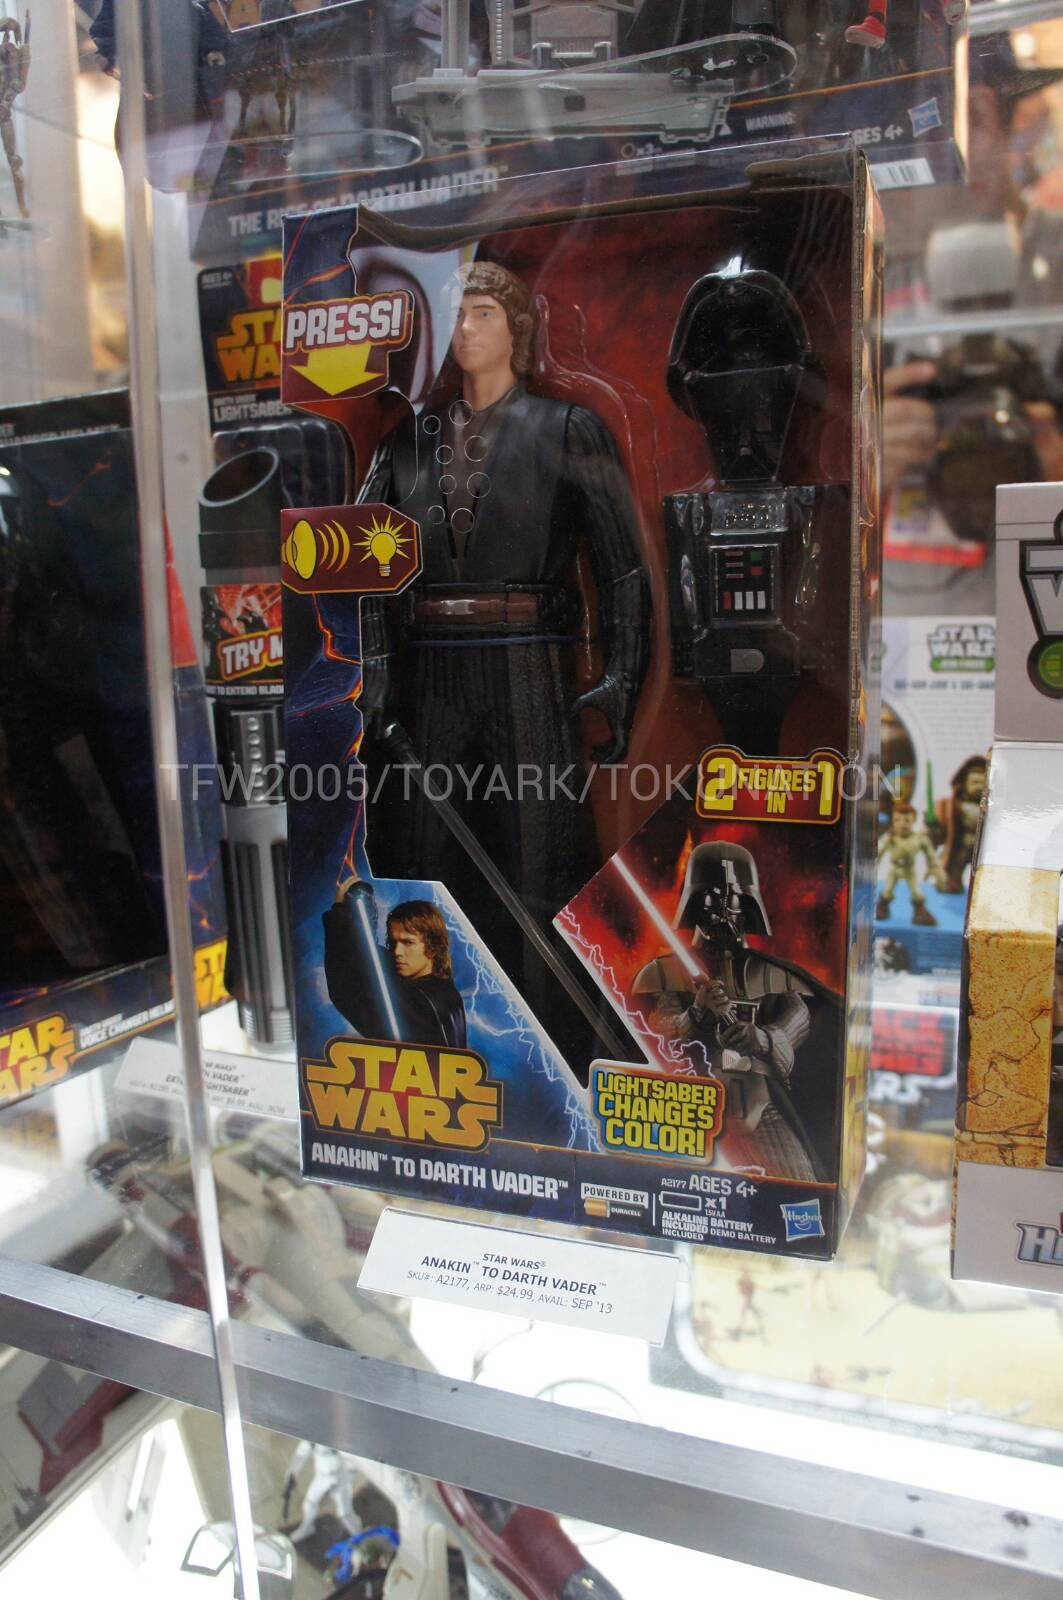 Sdcc 2013 hasbro star wars general items 002